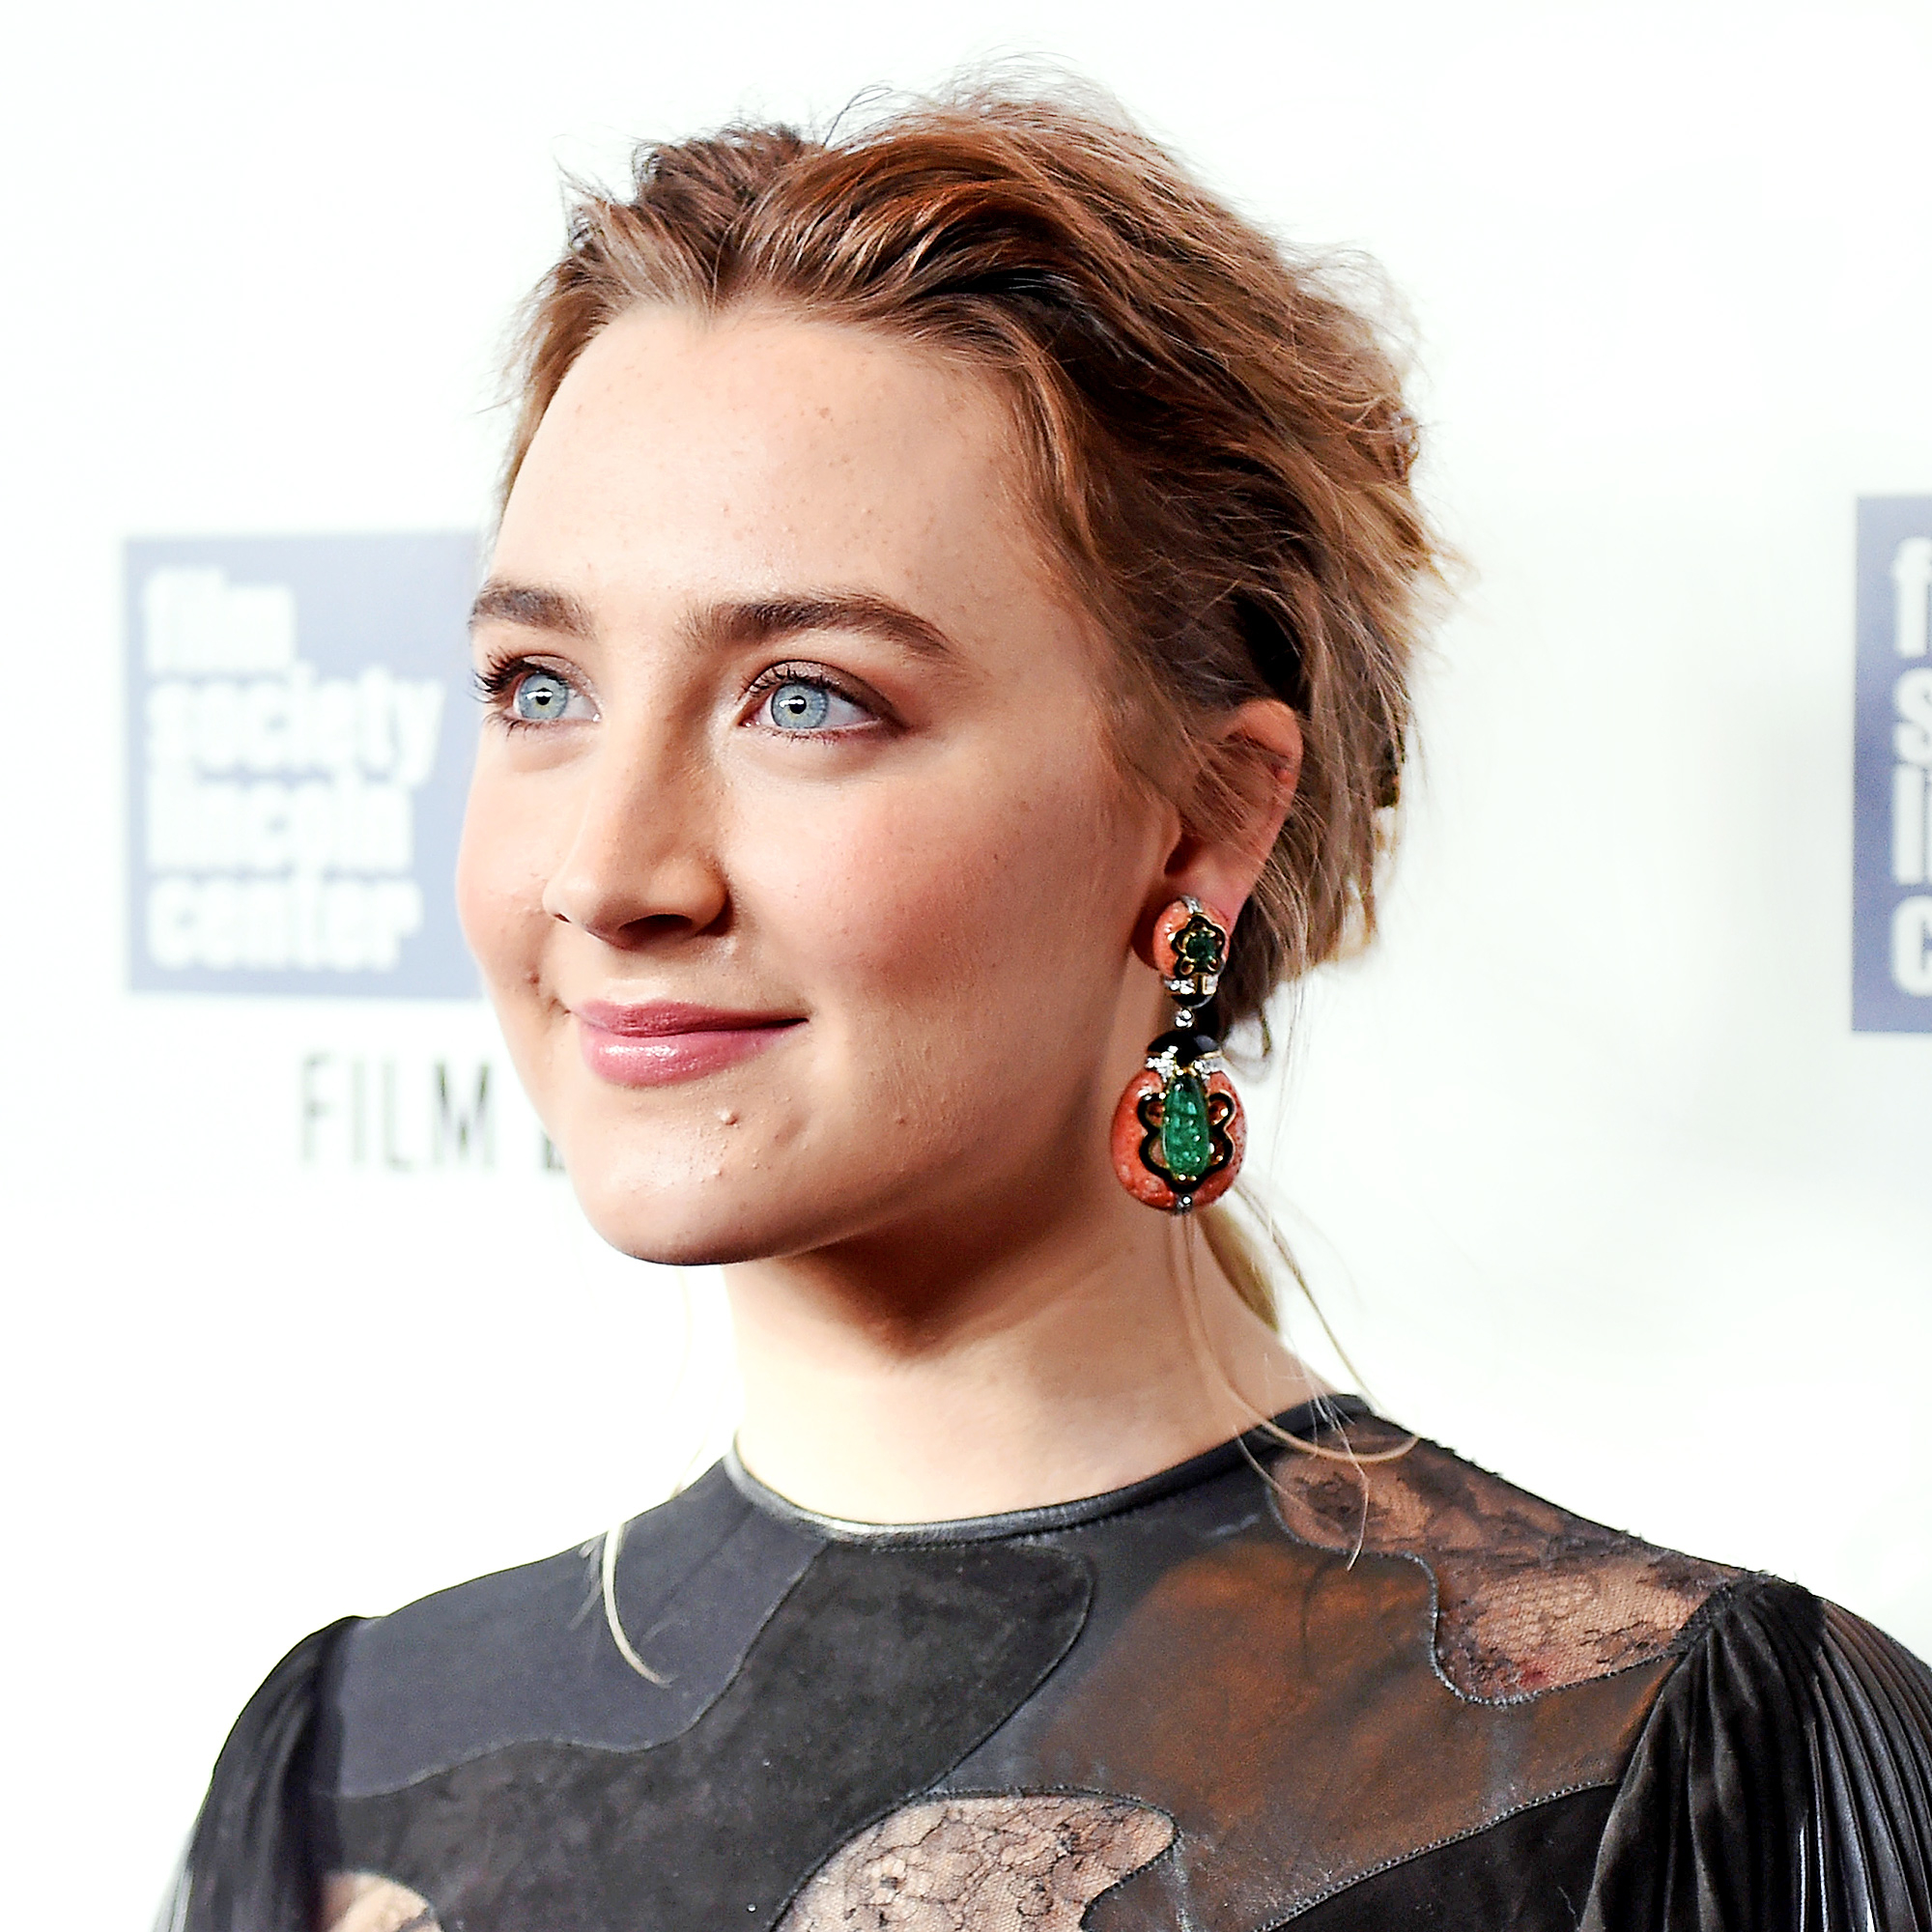 Saoise Ronan attends the 53rd New York Film Festival Premiere of